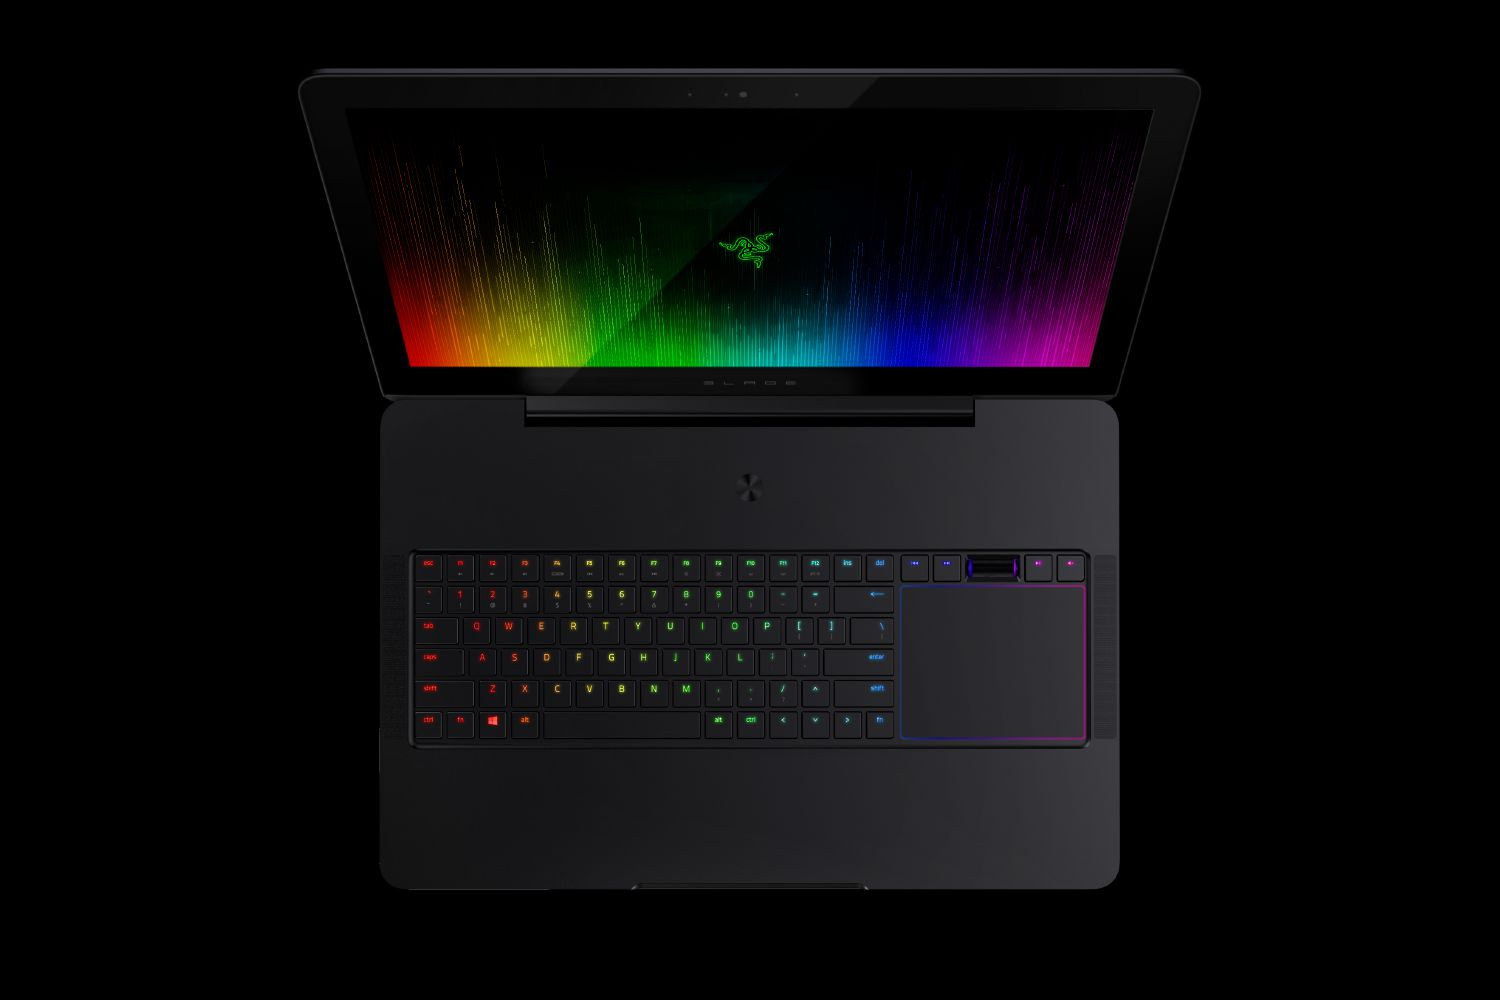 razer blade pro keyboard images. Black Bedroom Furniture Sets. Home Design Ideas